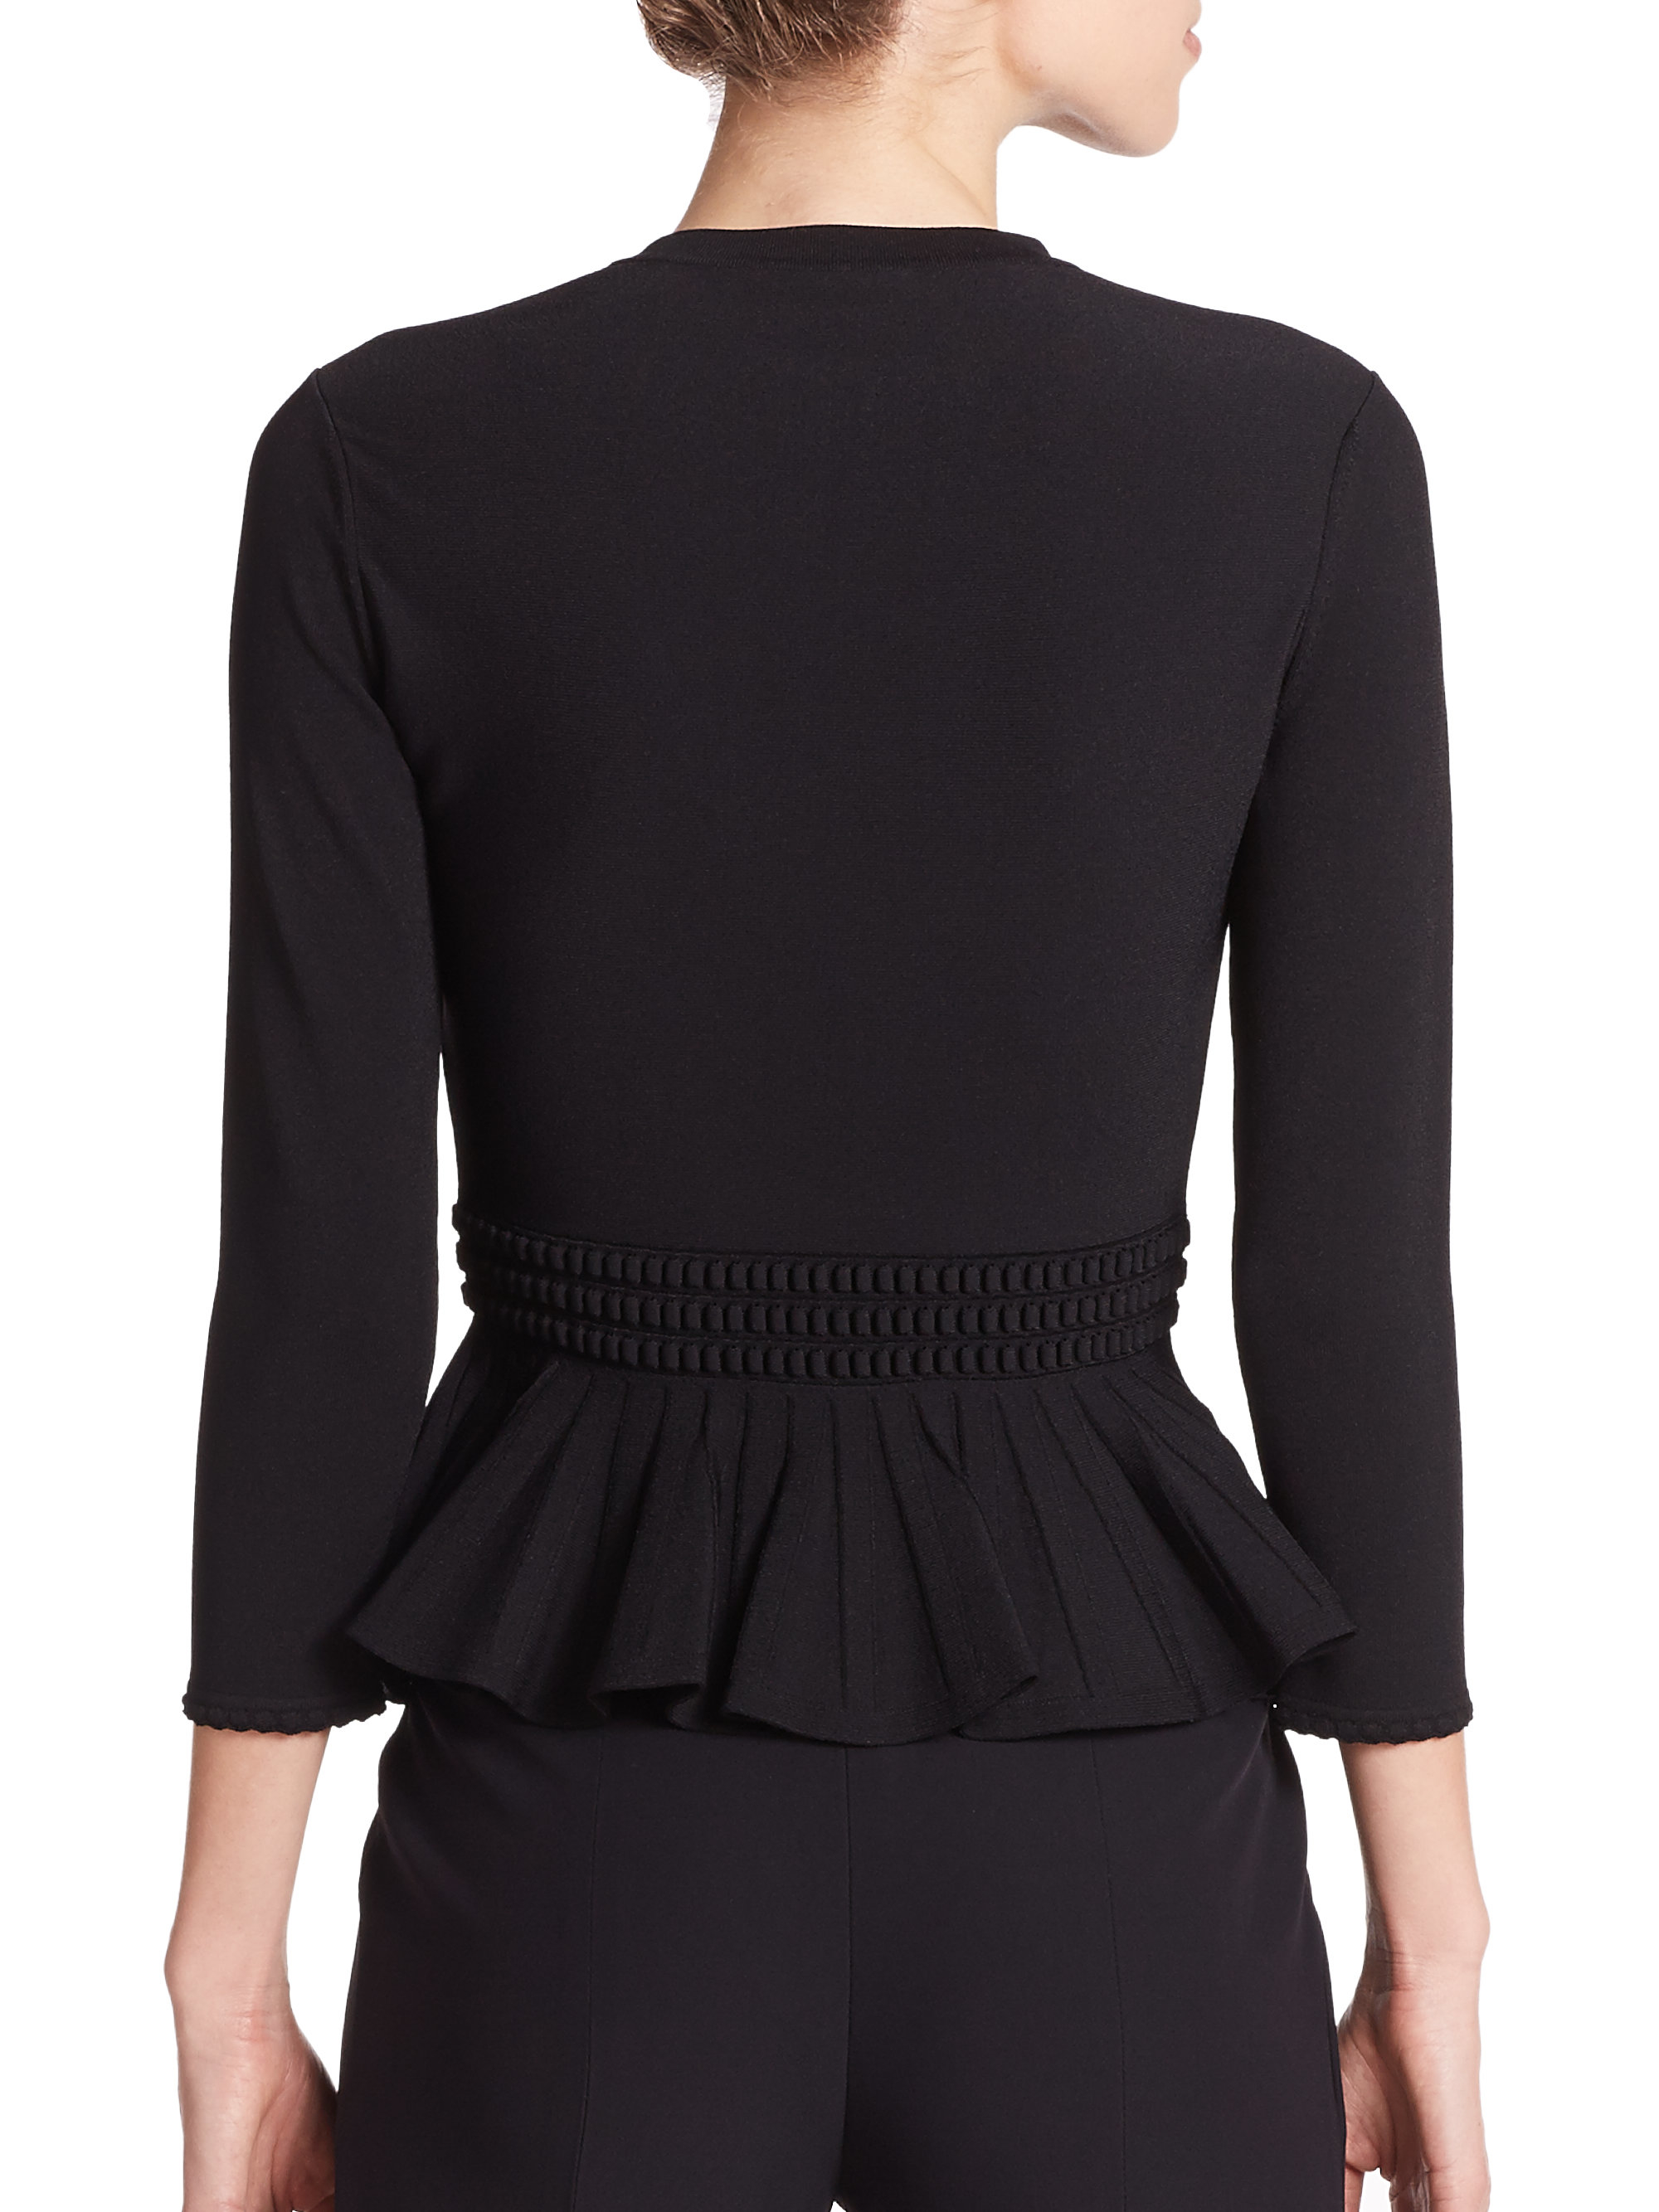 Black Cardigans for Women Keep your wardrobe up to date with Women's Black Cardigans from Kohl's. Kohl's offers many different styles and types of women's cardigans, like women's black plus cardigan sweaters, women's black Croft & Barrow cardigans, and women's black petite cardigans.